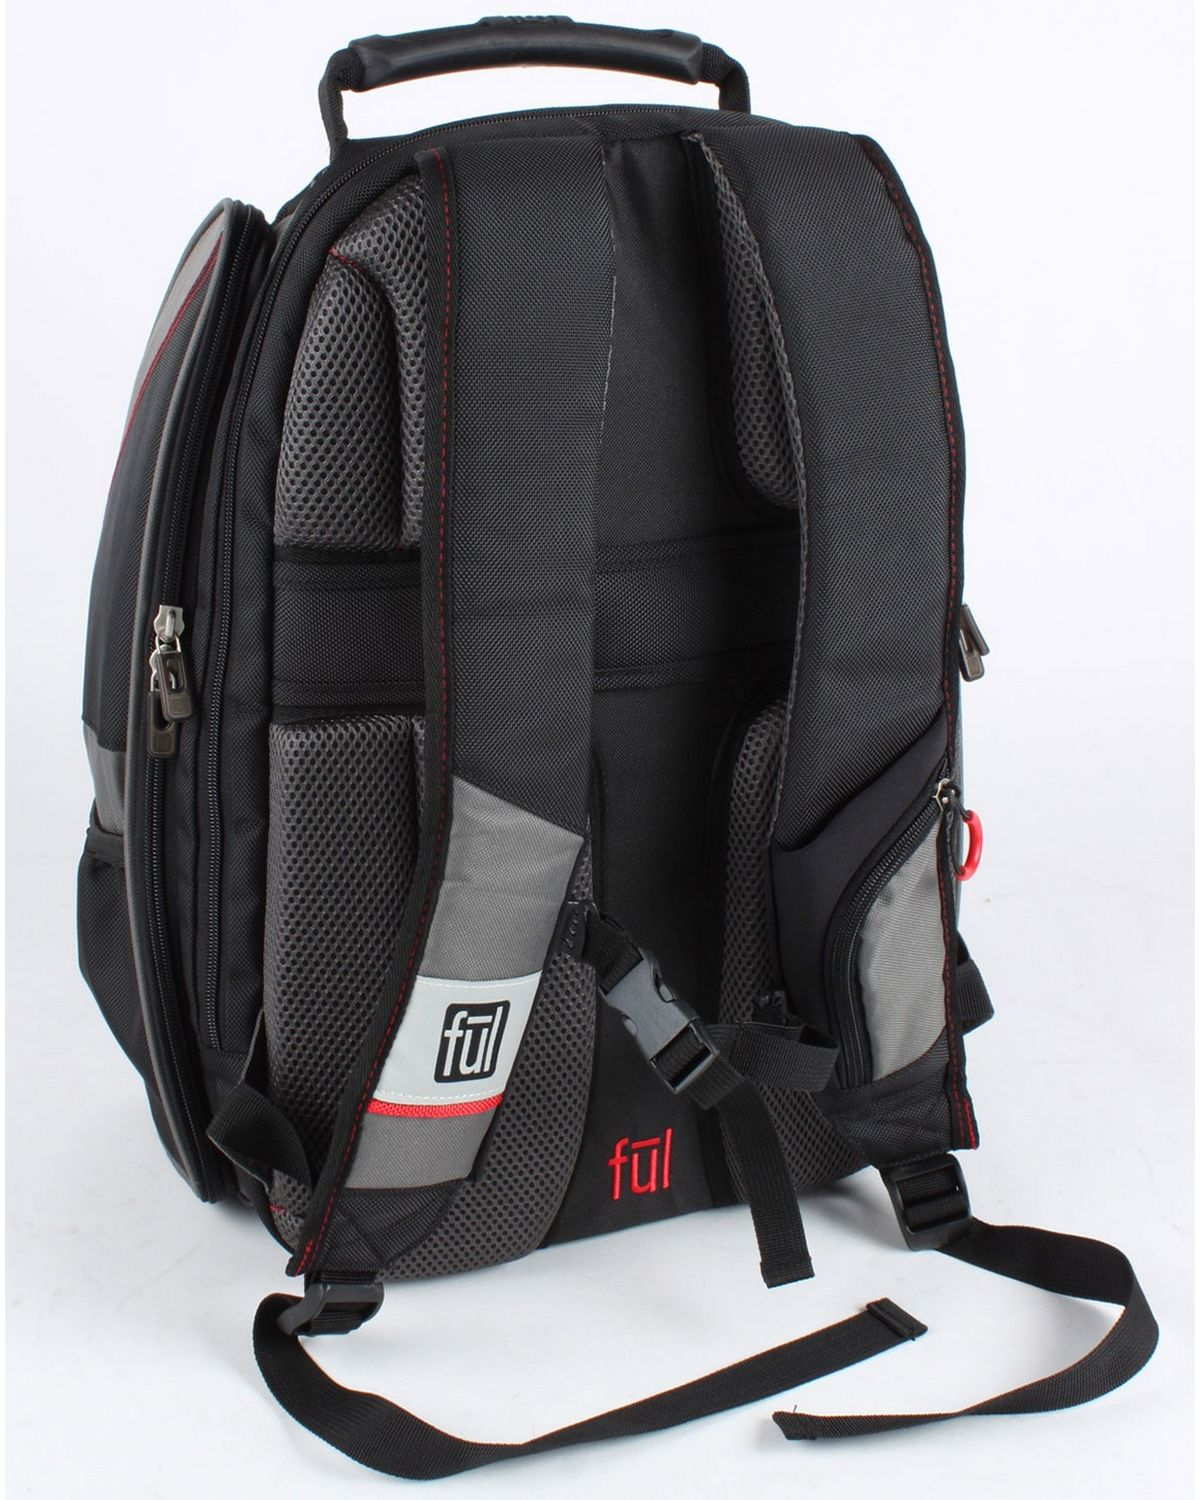 Buy ful bd5251 coretech sideffect backpack - Alienware concealed carry ...